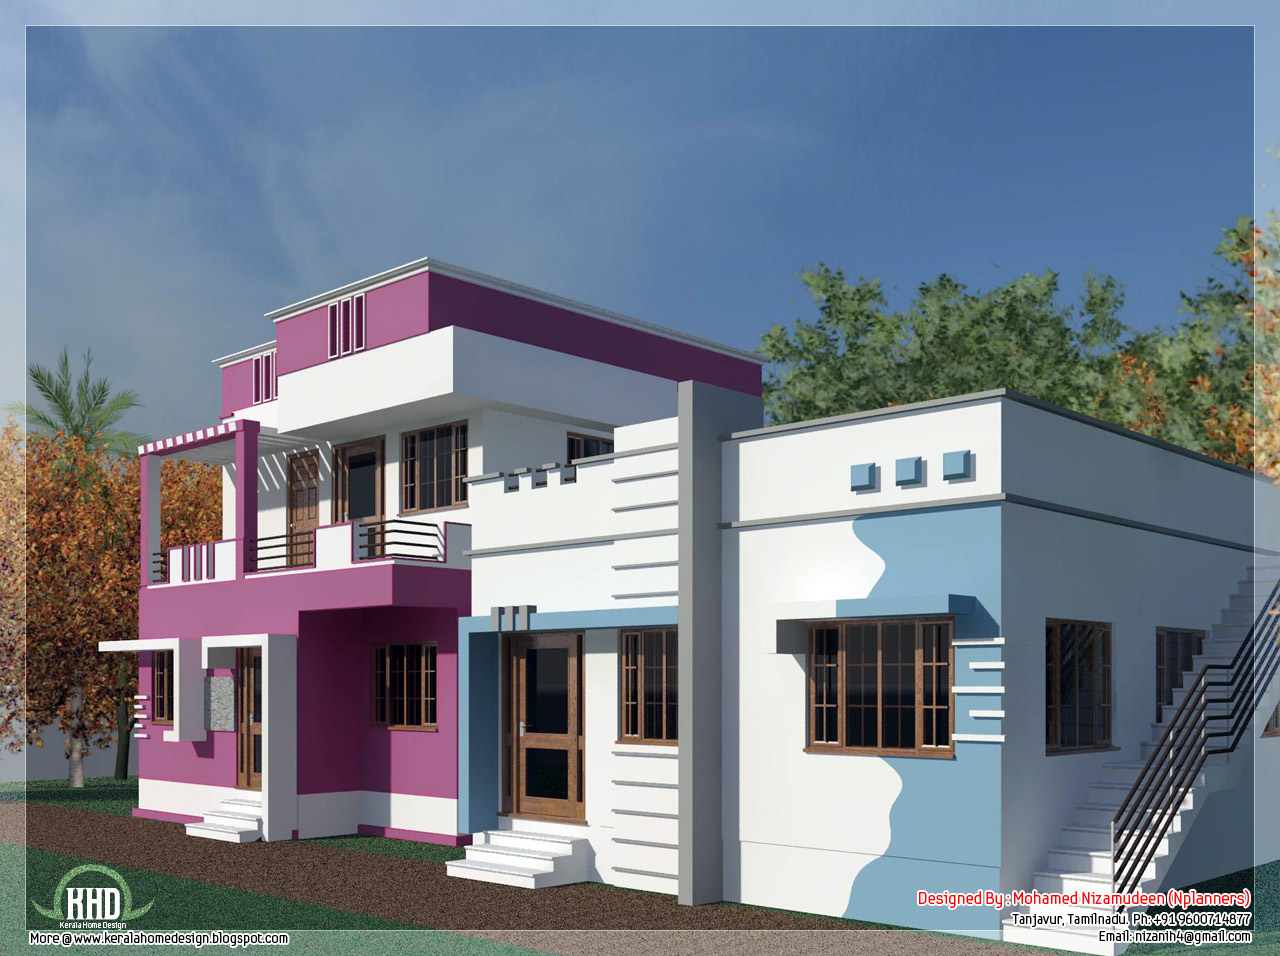 Tamilnadu model home desgin in 3000 kerala home for New model house interior design